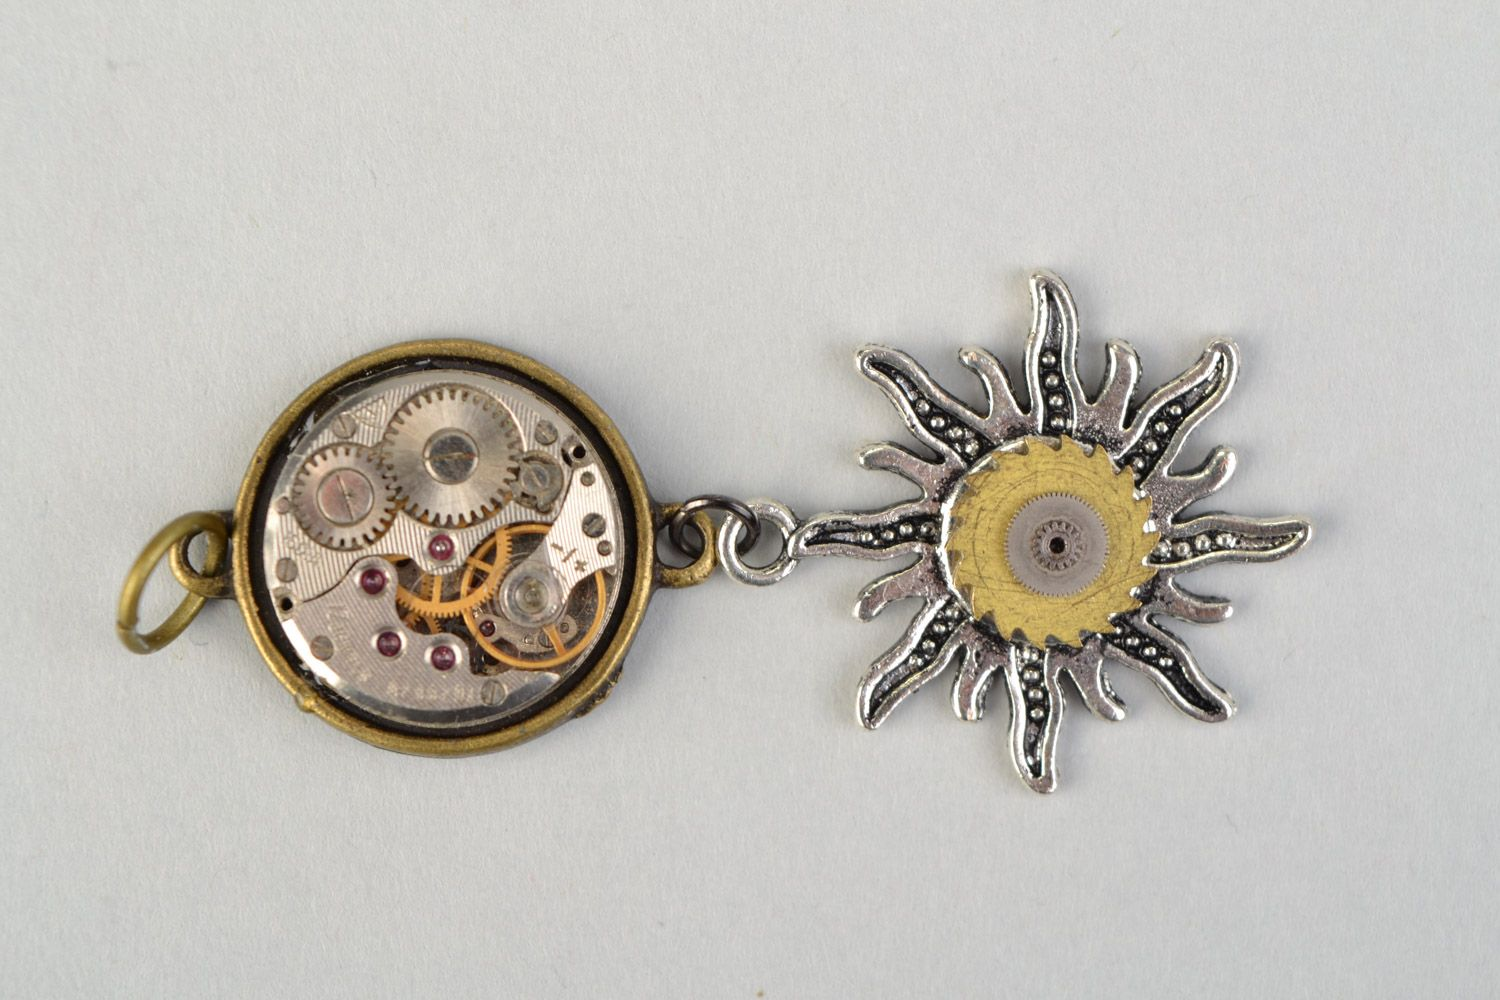 Handmade metal pendant with clock mechanism in steampunk style Sun and Time photo 3